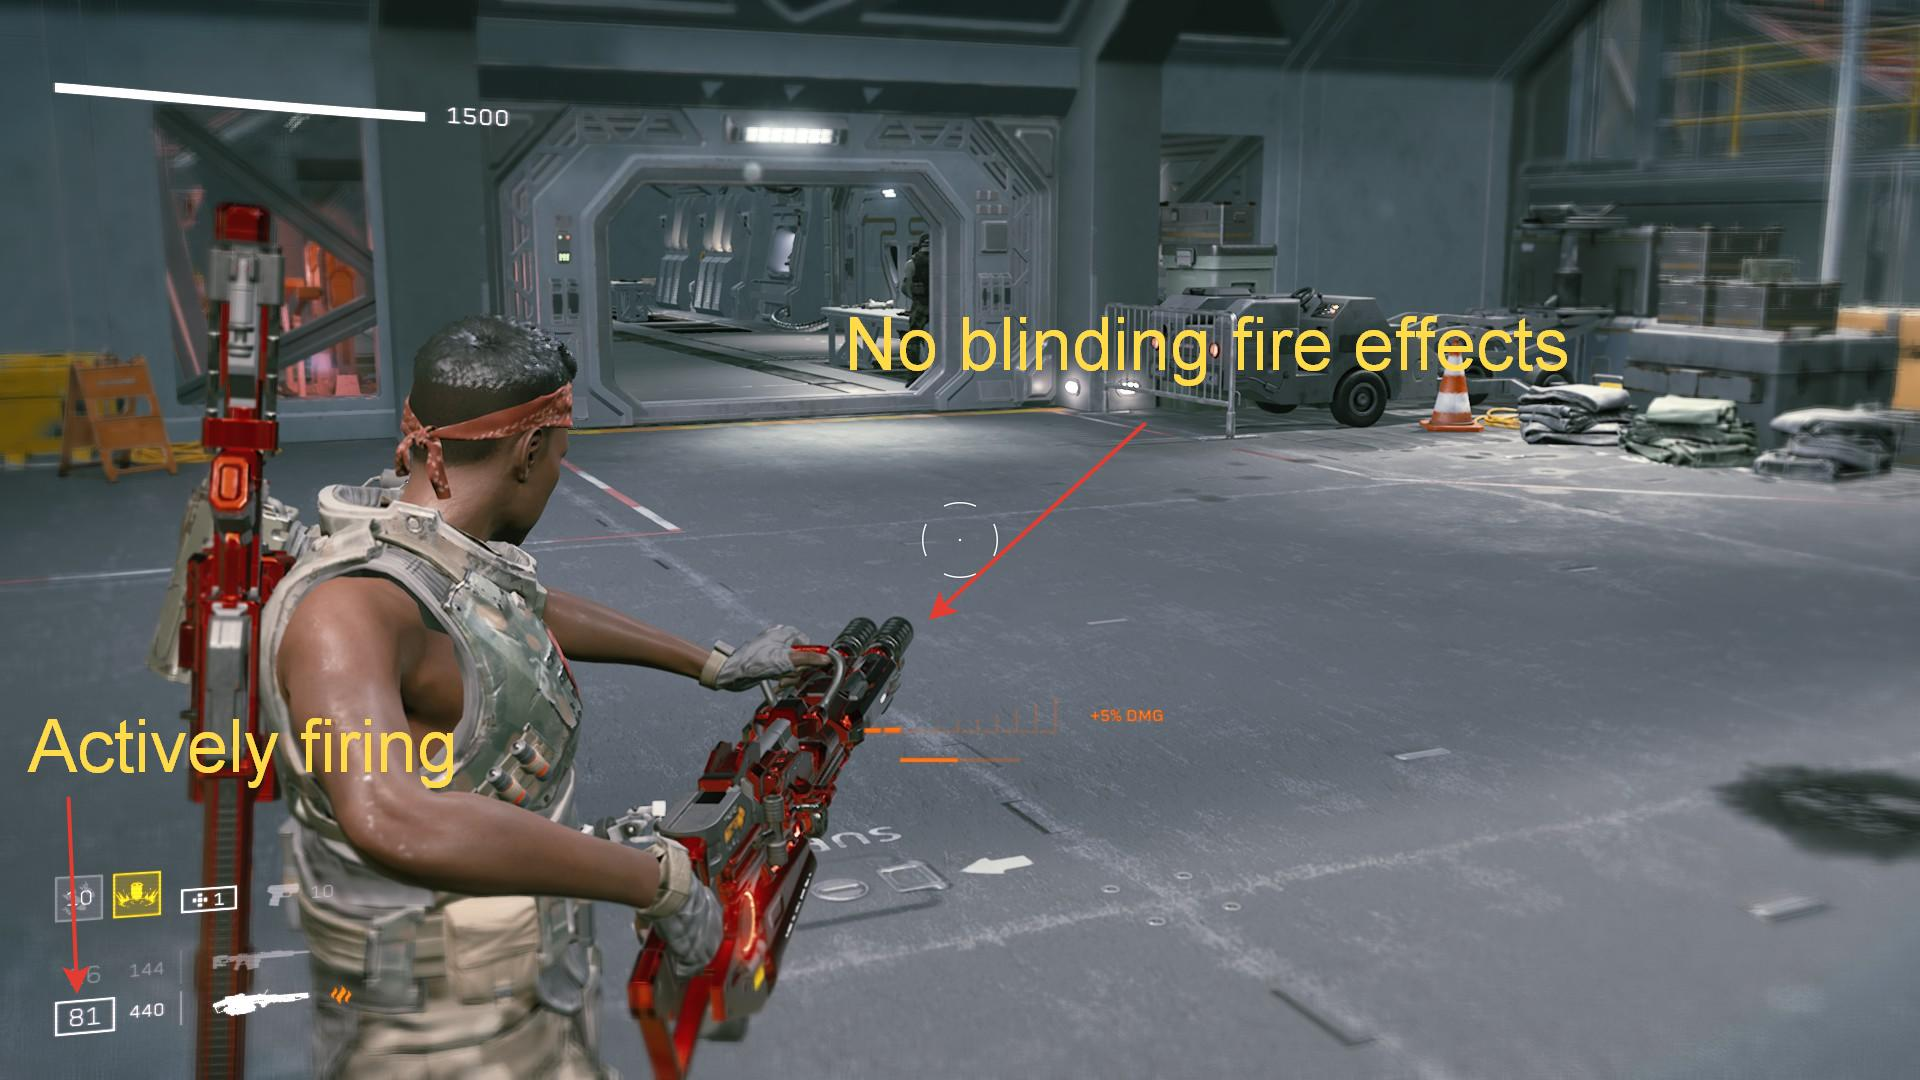 Aliens: Fireteam Elite - How to Remove Muzzle Flashes and Other Effects in Game - Why? - 24A8F19